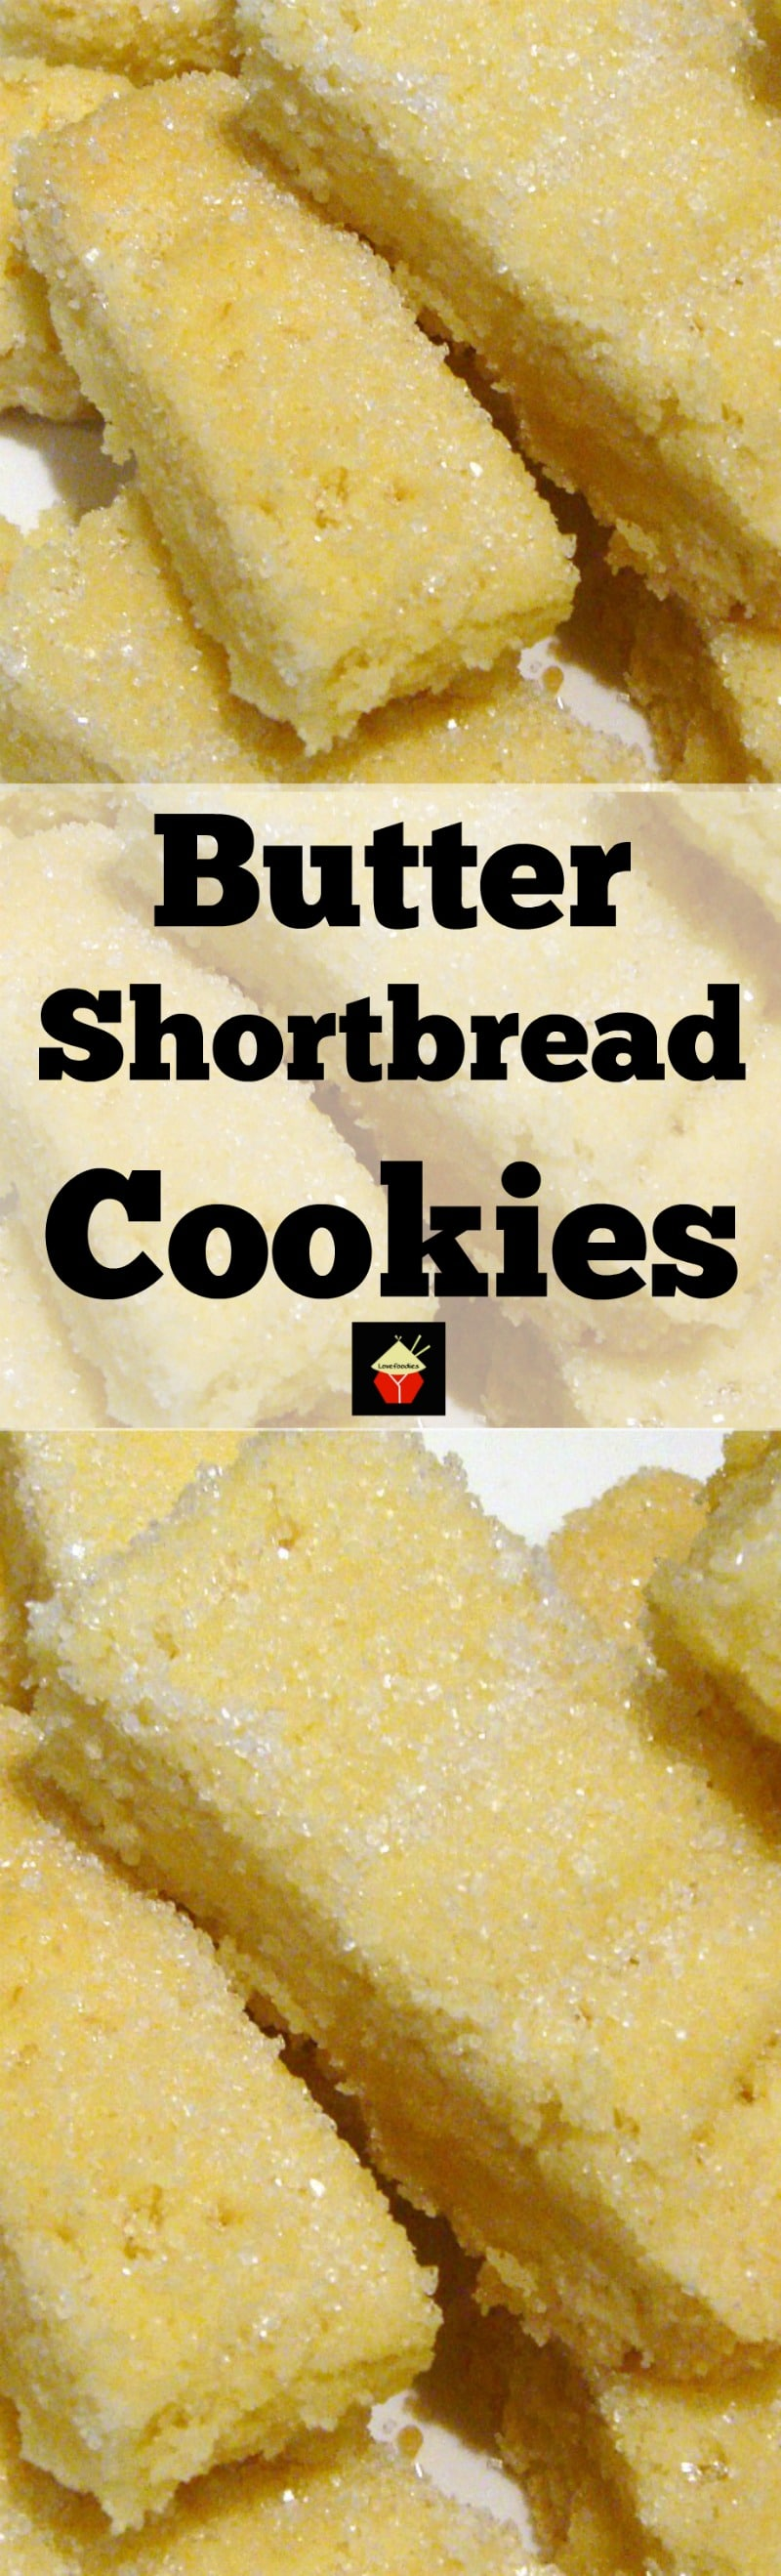 Butter Shortbread simply a delight to eat! The dough is so easy to make and uses simple ingredients. These are a traditional cookie and melt in your mouth!   Lovefoodies.com